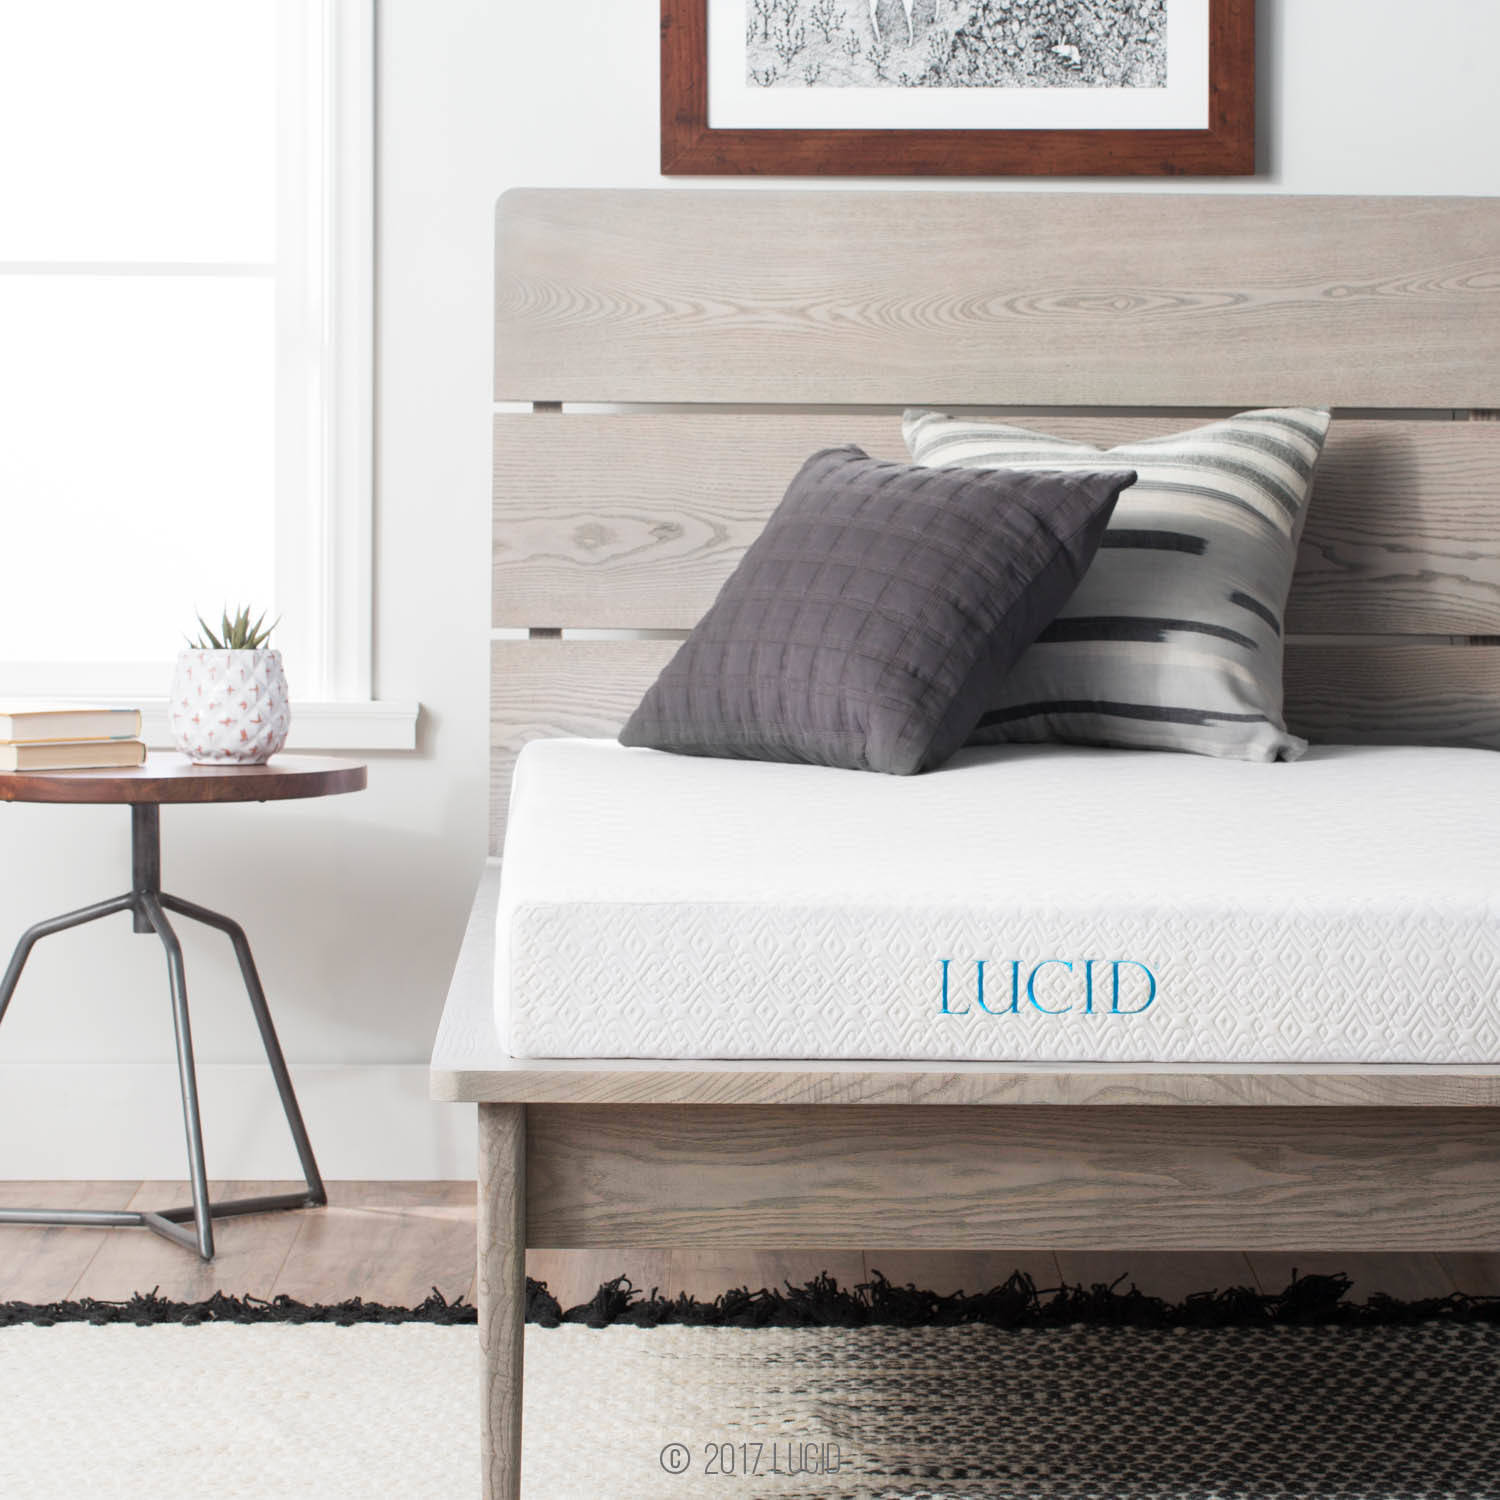 Lucid 5 Inch Gel Memory Foam Mattress, Multiple Sizes